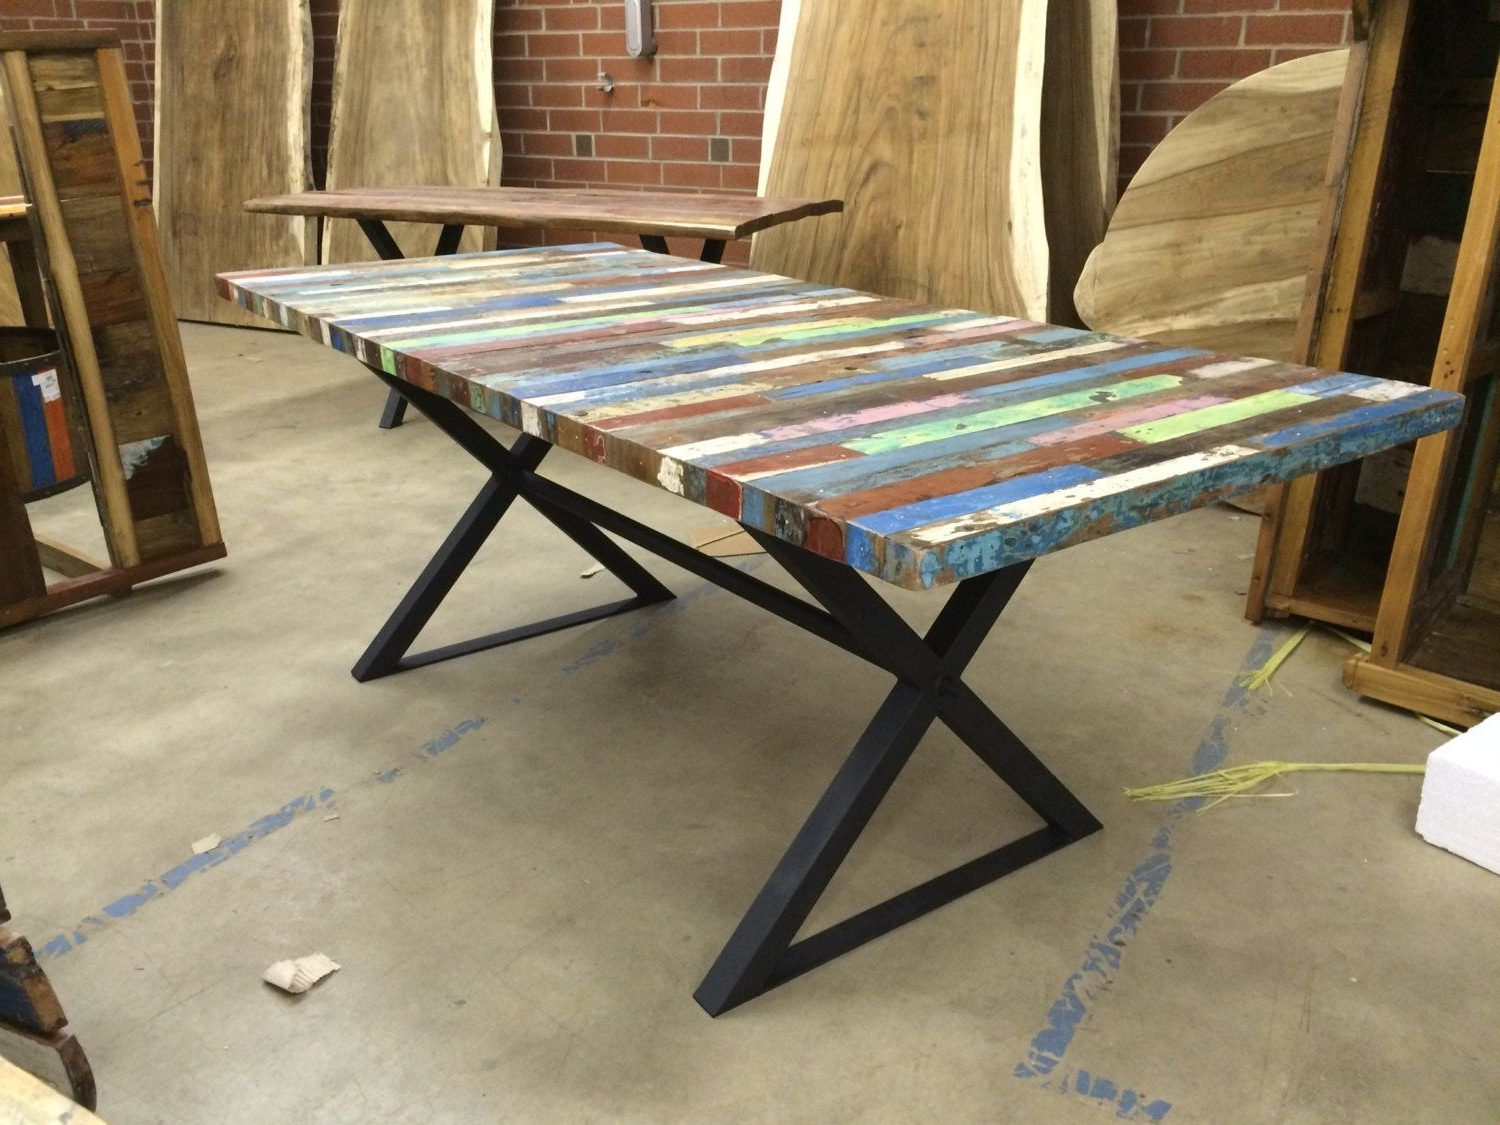 Newest Buy A Handmade Reclaimed Dining Table, Bali Boat Wood Table, Custom In Cheap Reclaimed Wood Dining Tables (View 10 of 25)